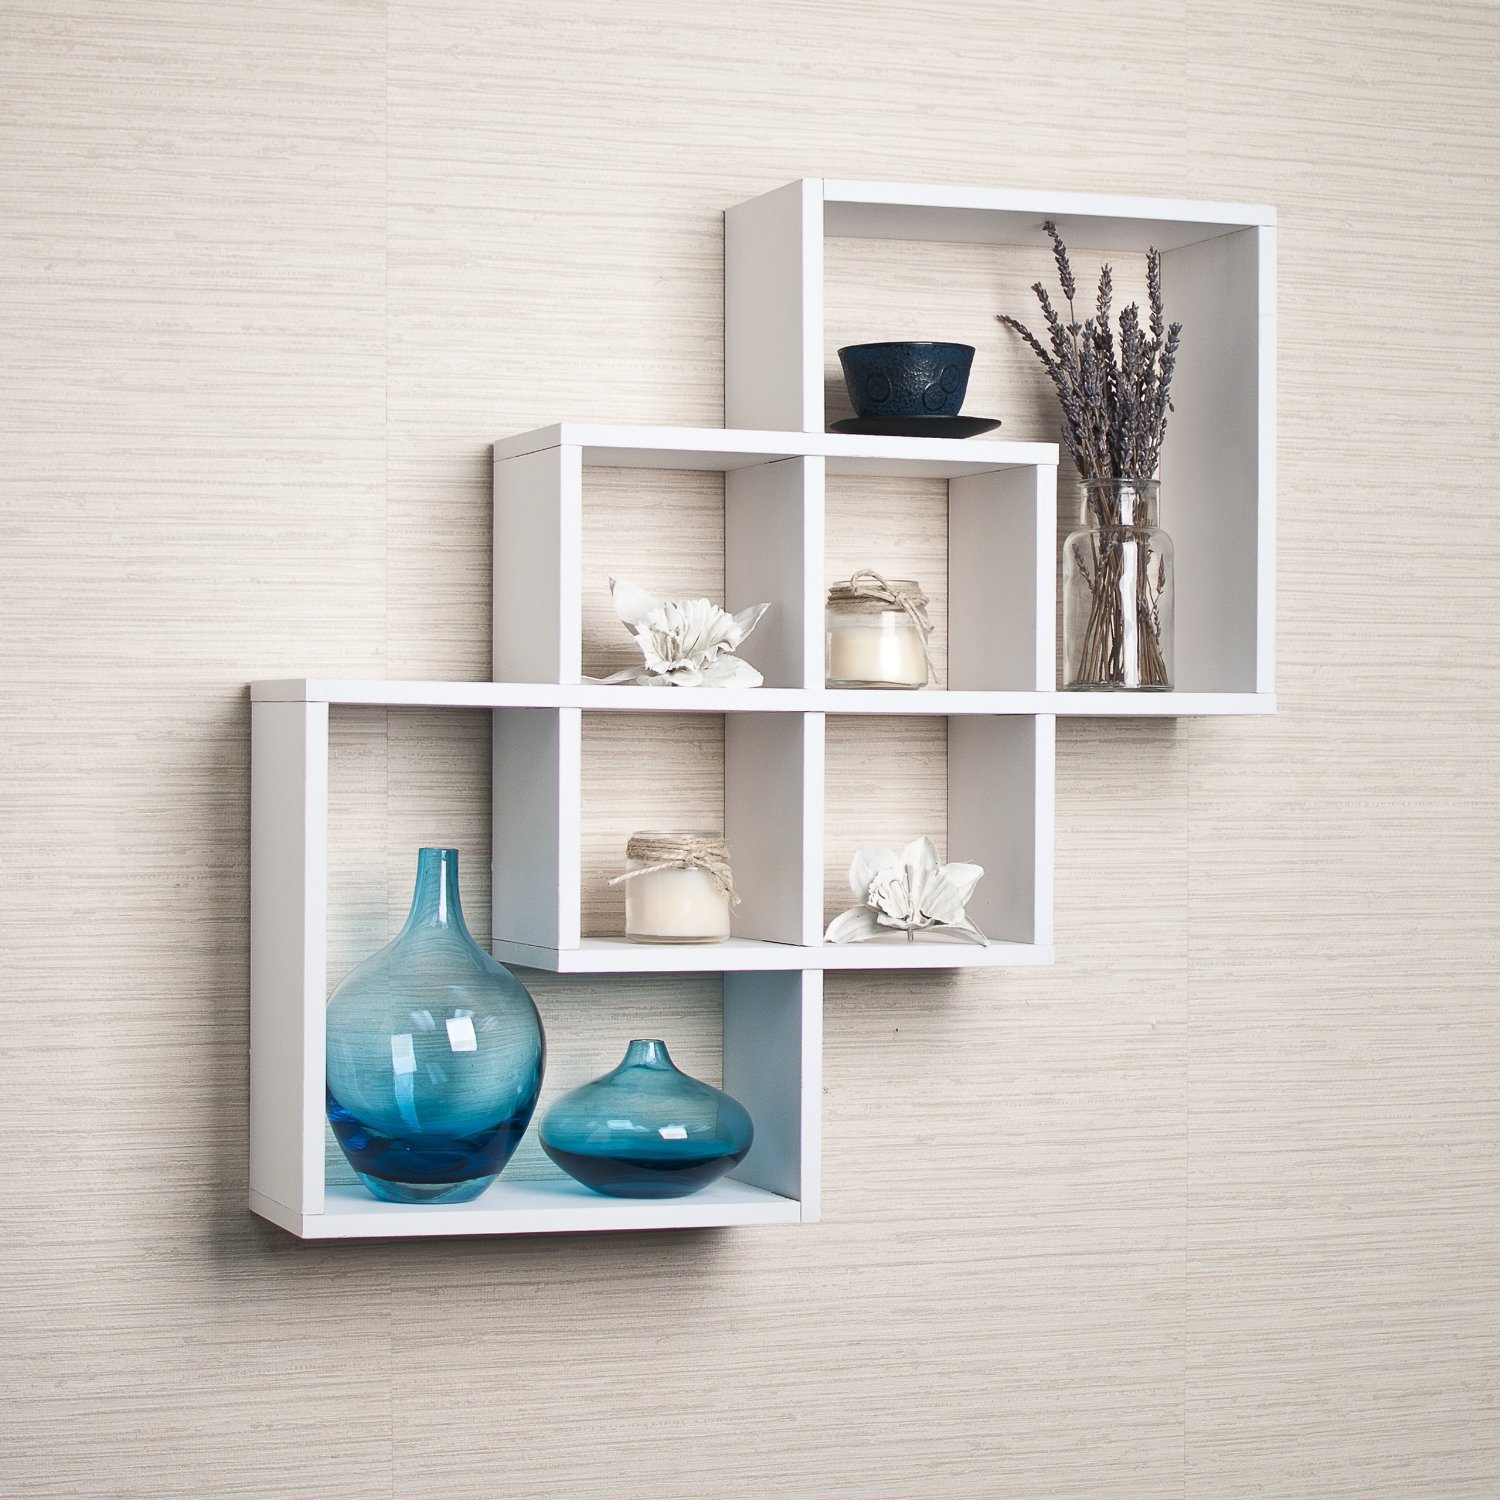 top white floating shelves for home interiors intersecting shelf glass your with lights underneath bella vista shower screens black wall display cubes open clothes storage system